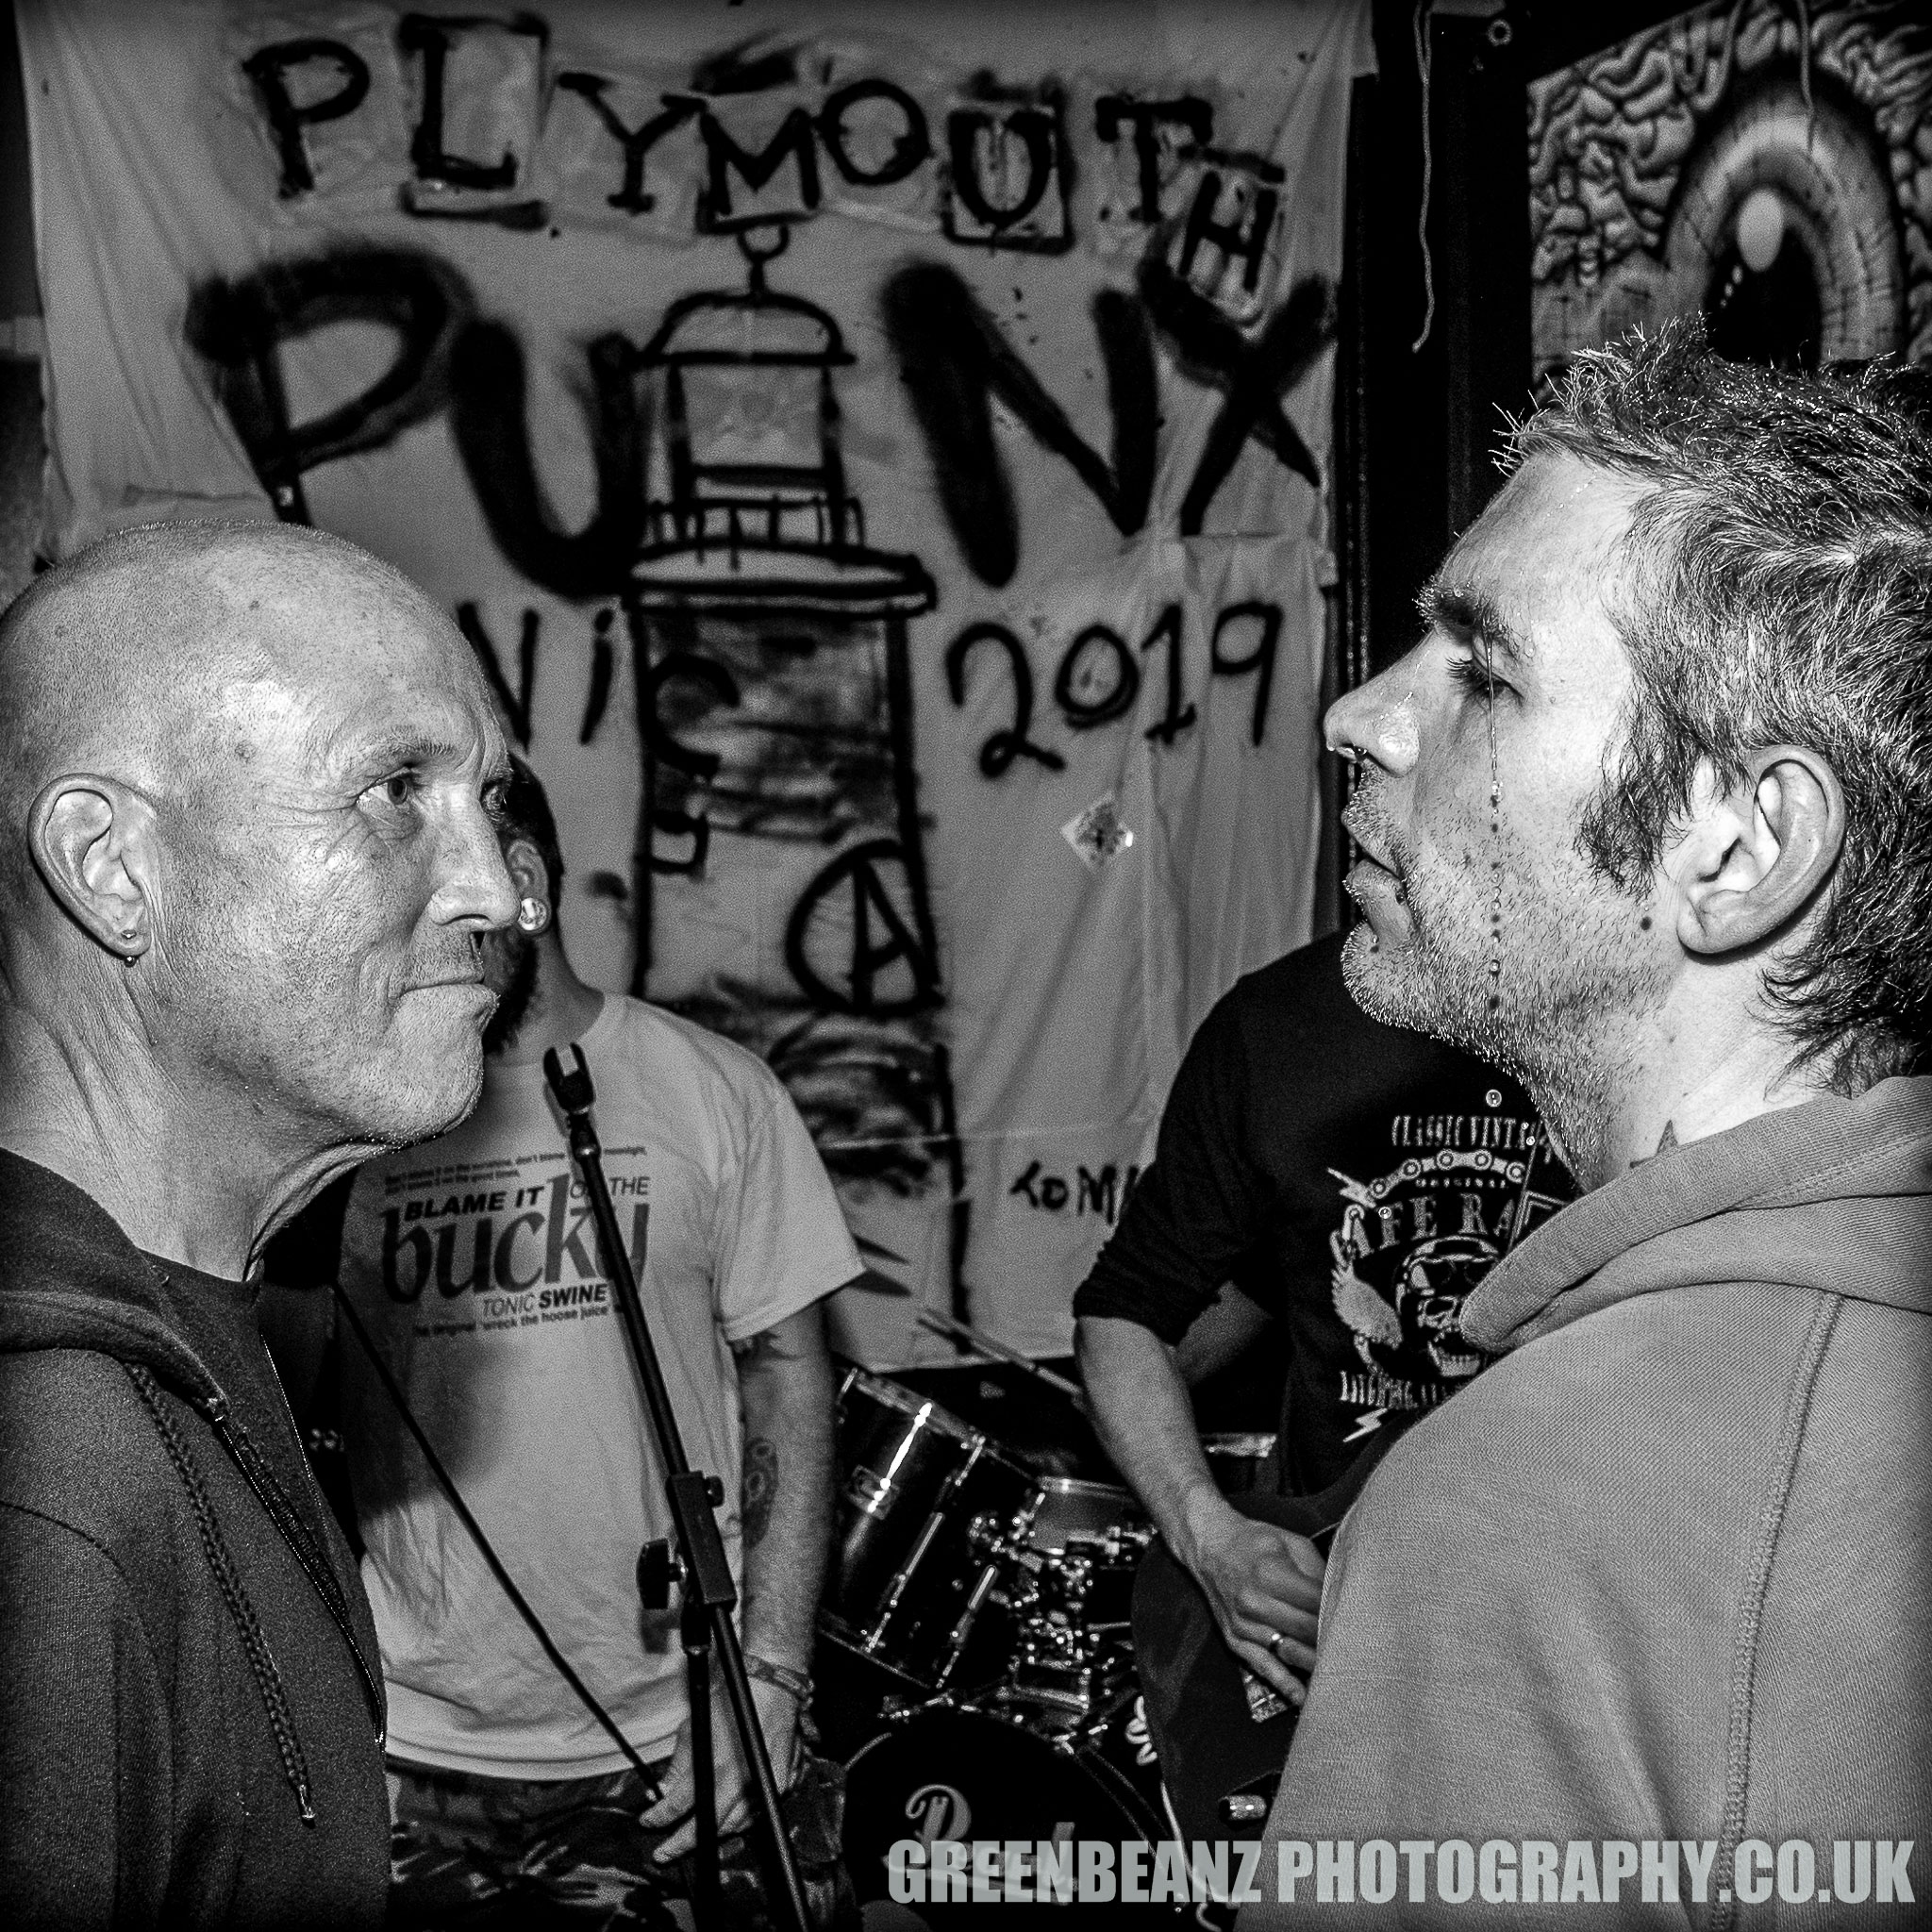 Plymouth Punks Picnic Fans at the Pit and Pendulum in 2019